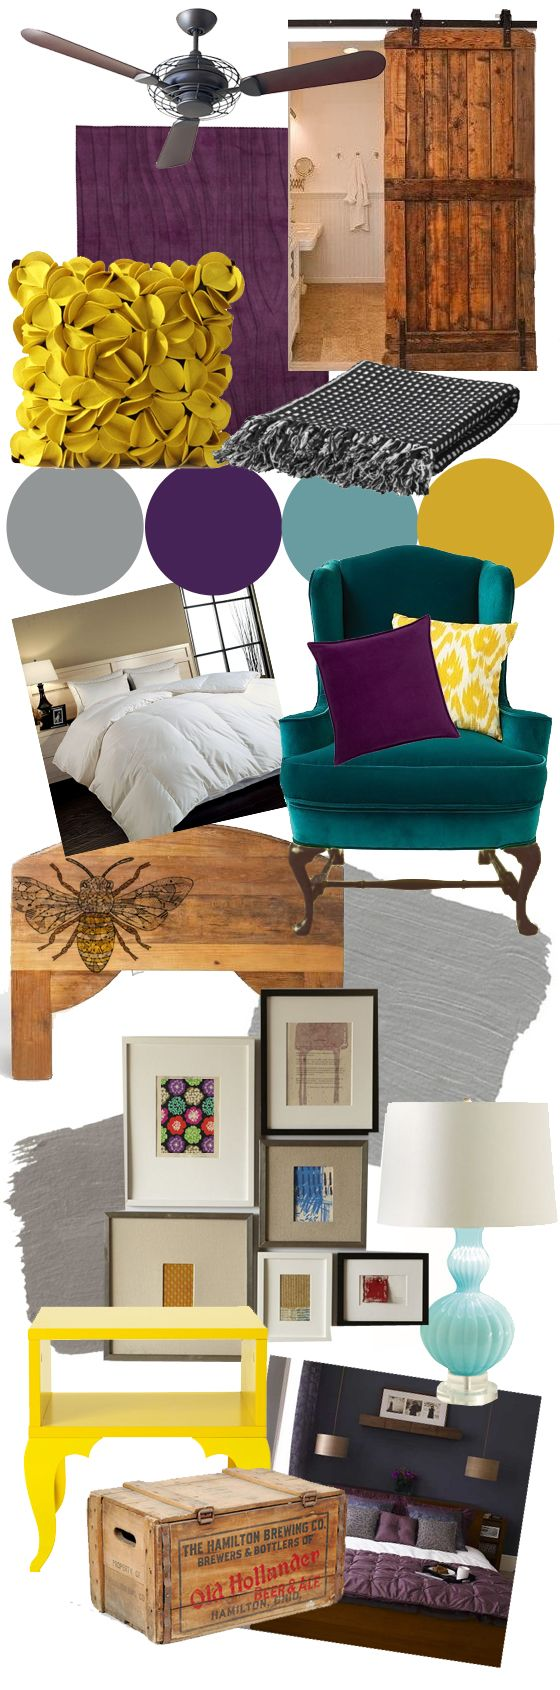 jewel tones inspiration and mood boards on pinterest